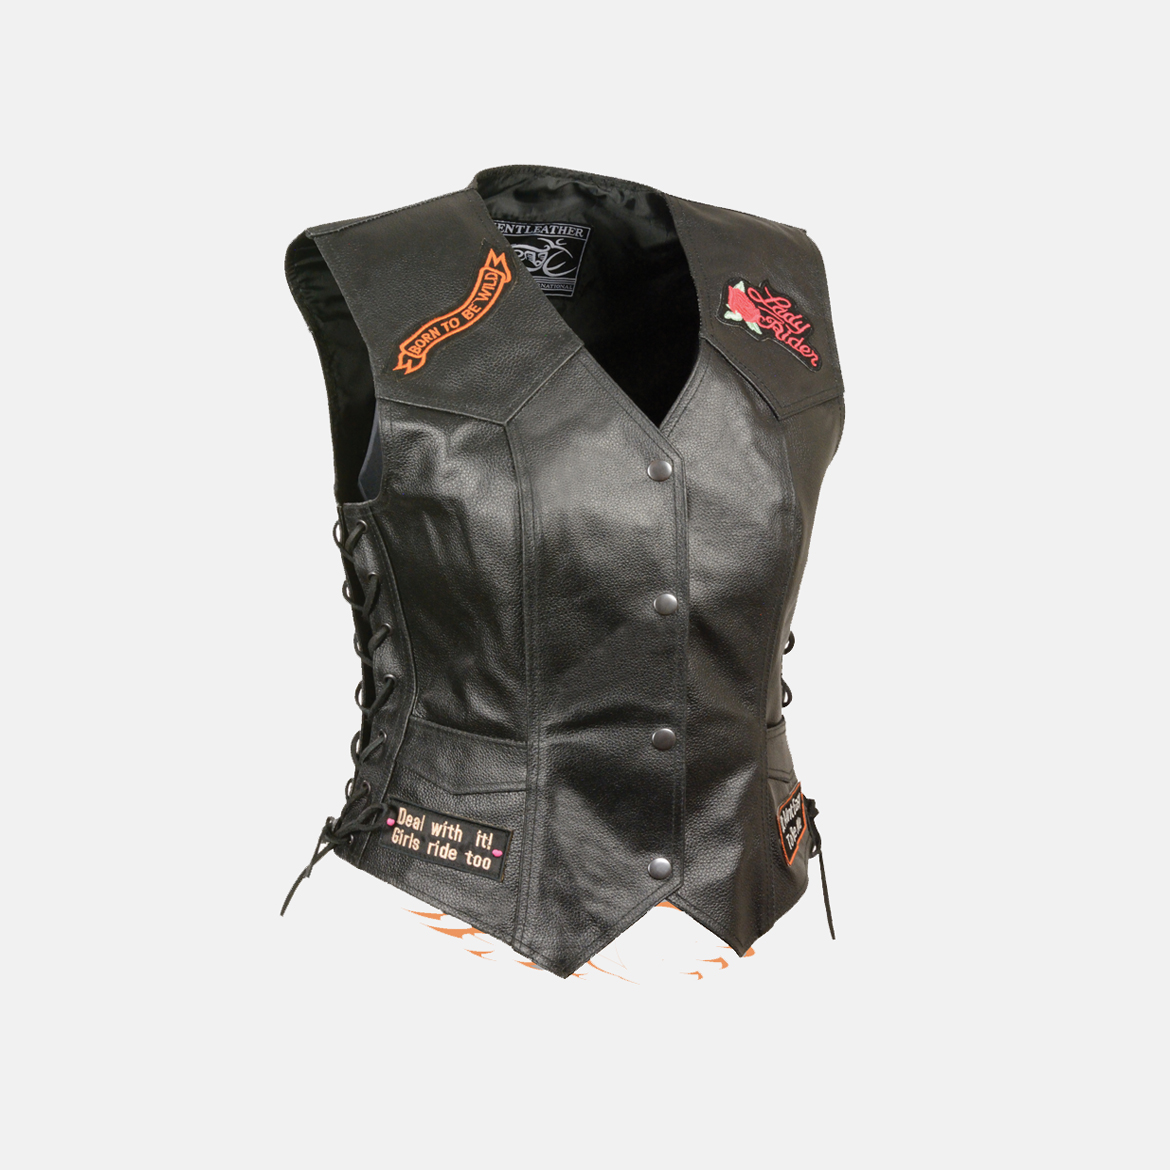 women's jacket with patches